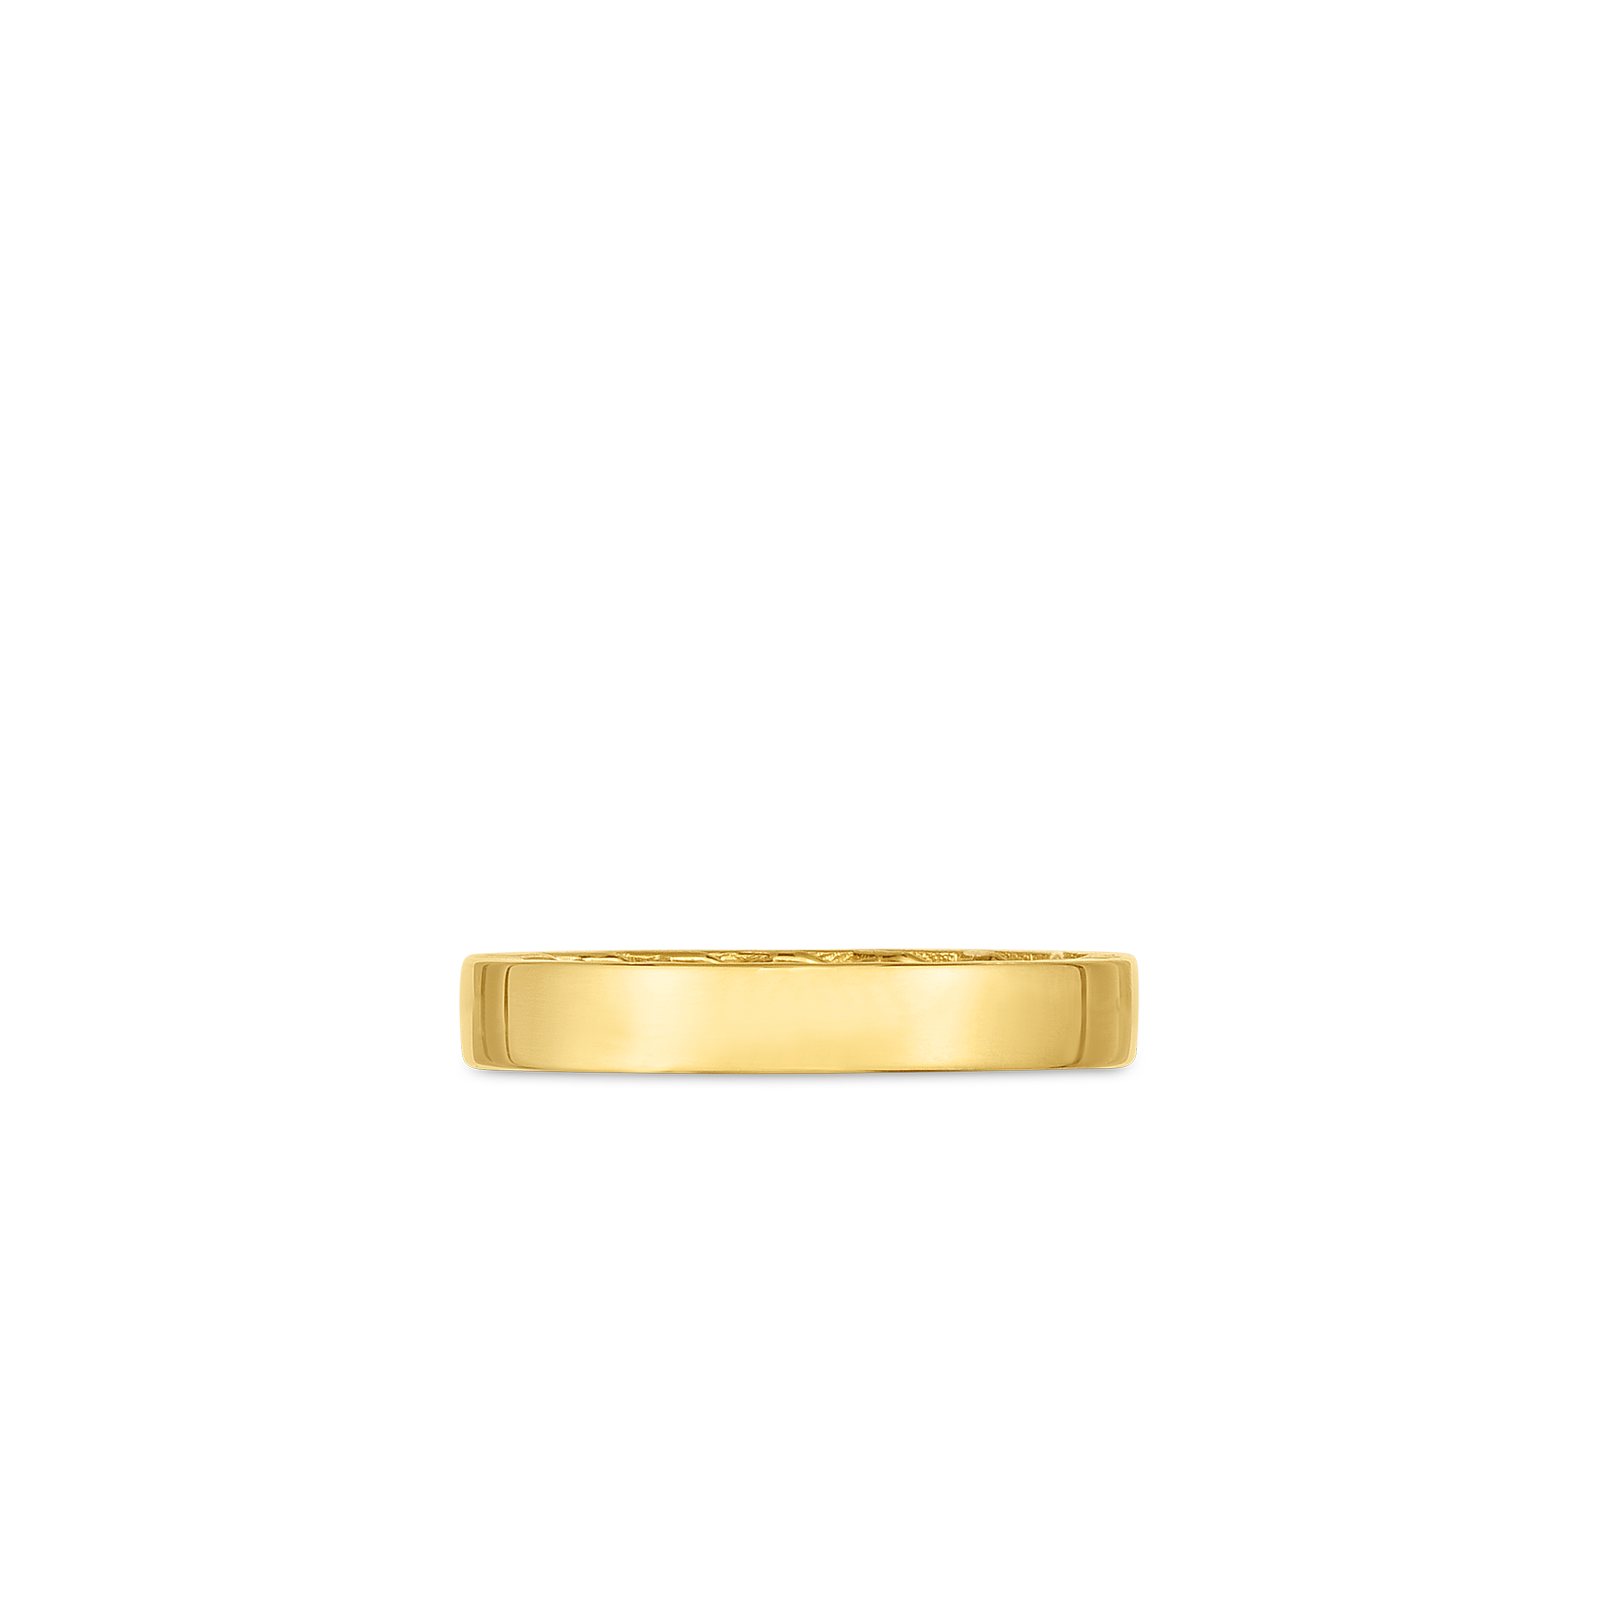 Golden band png. Italian gold gate ring